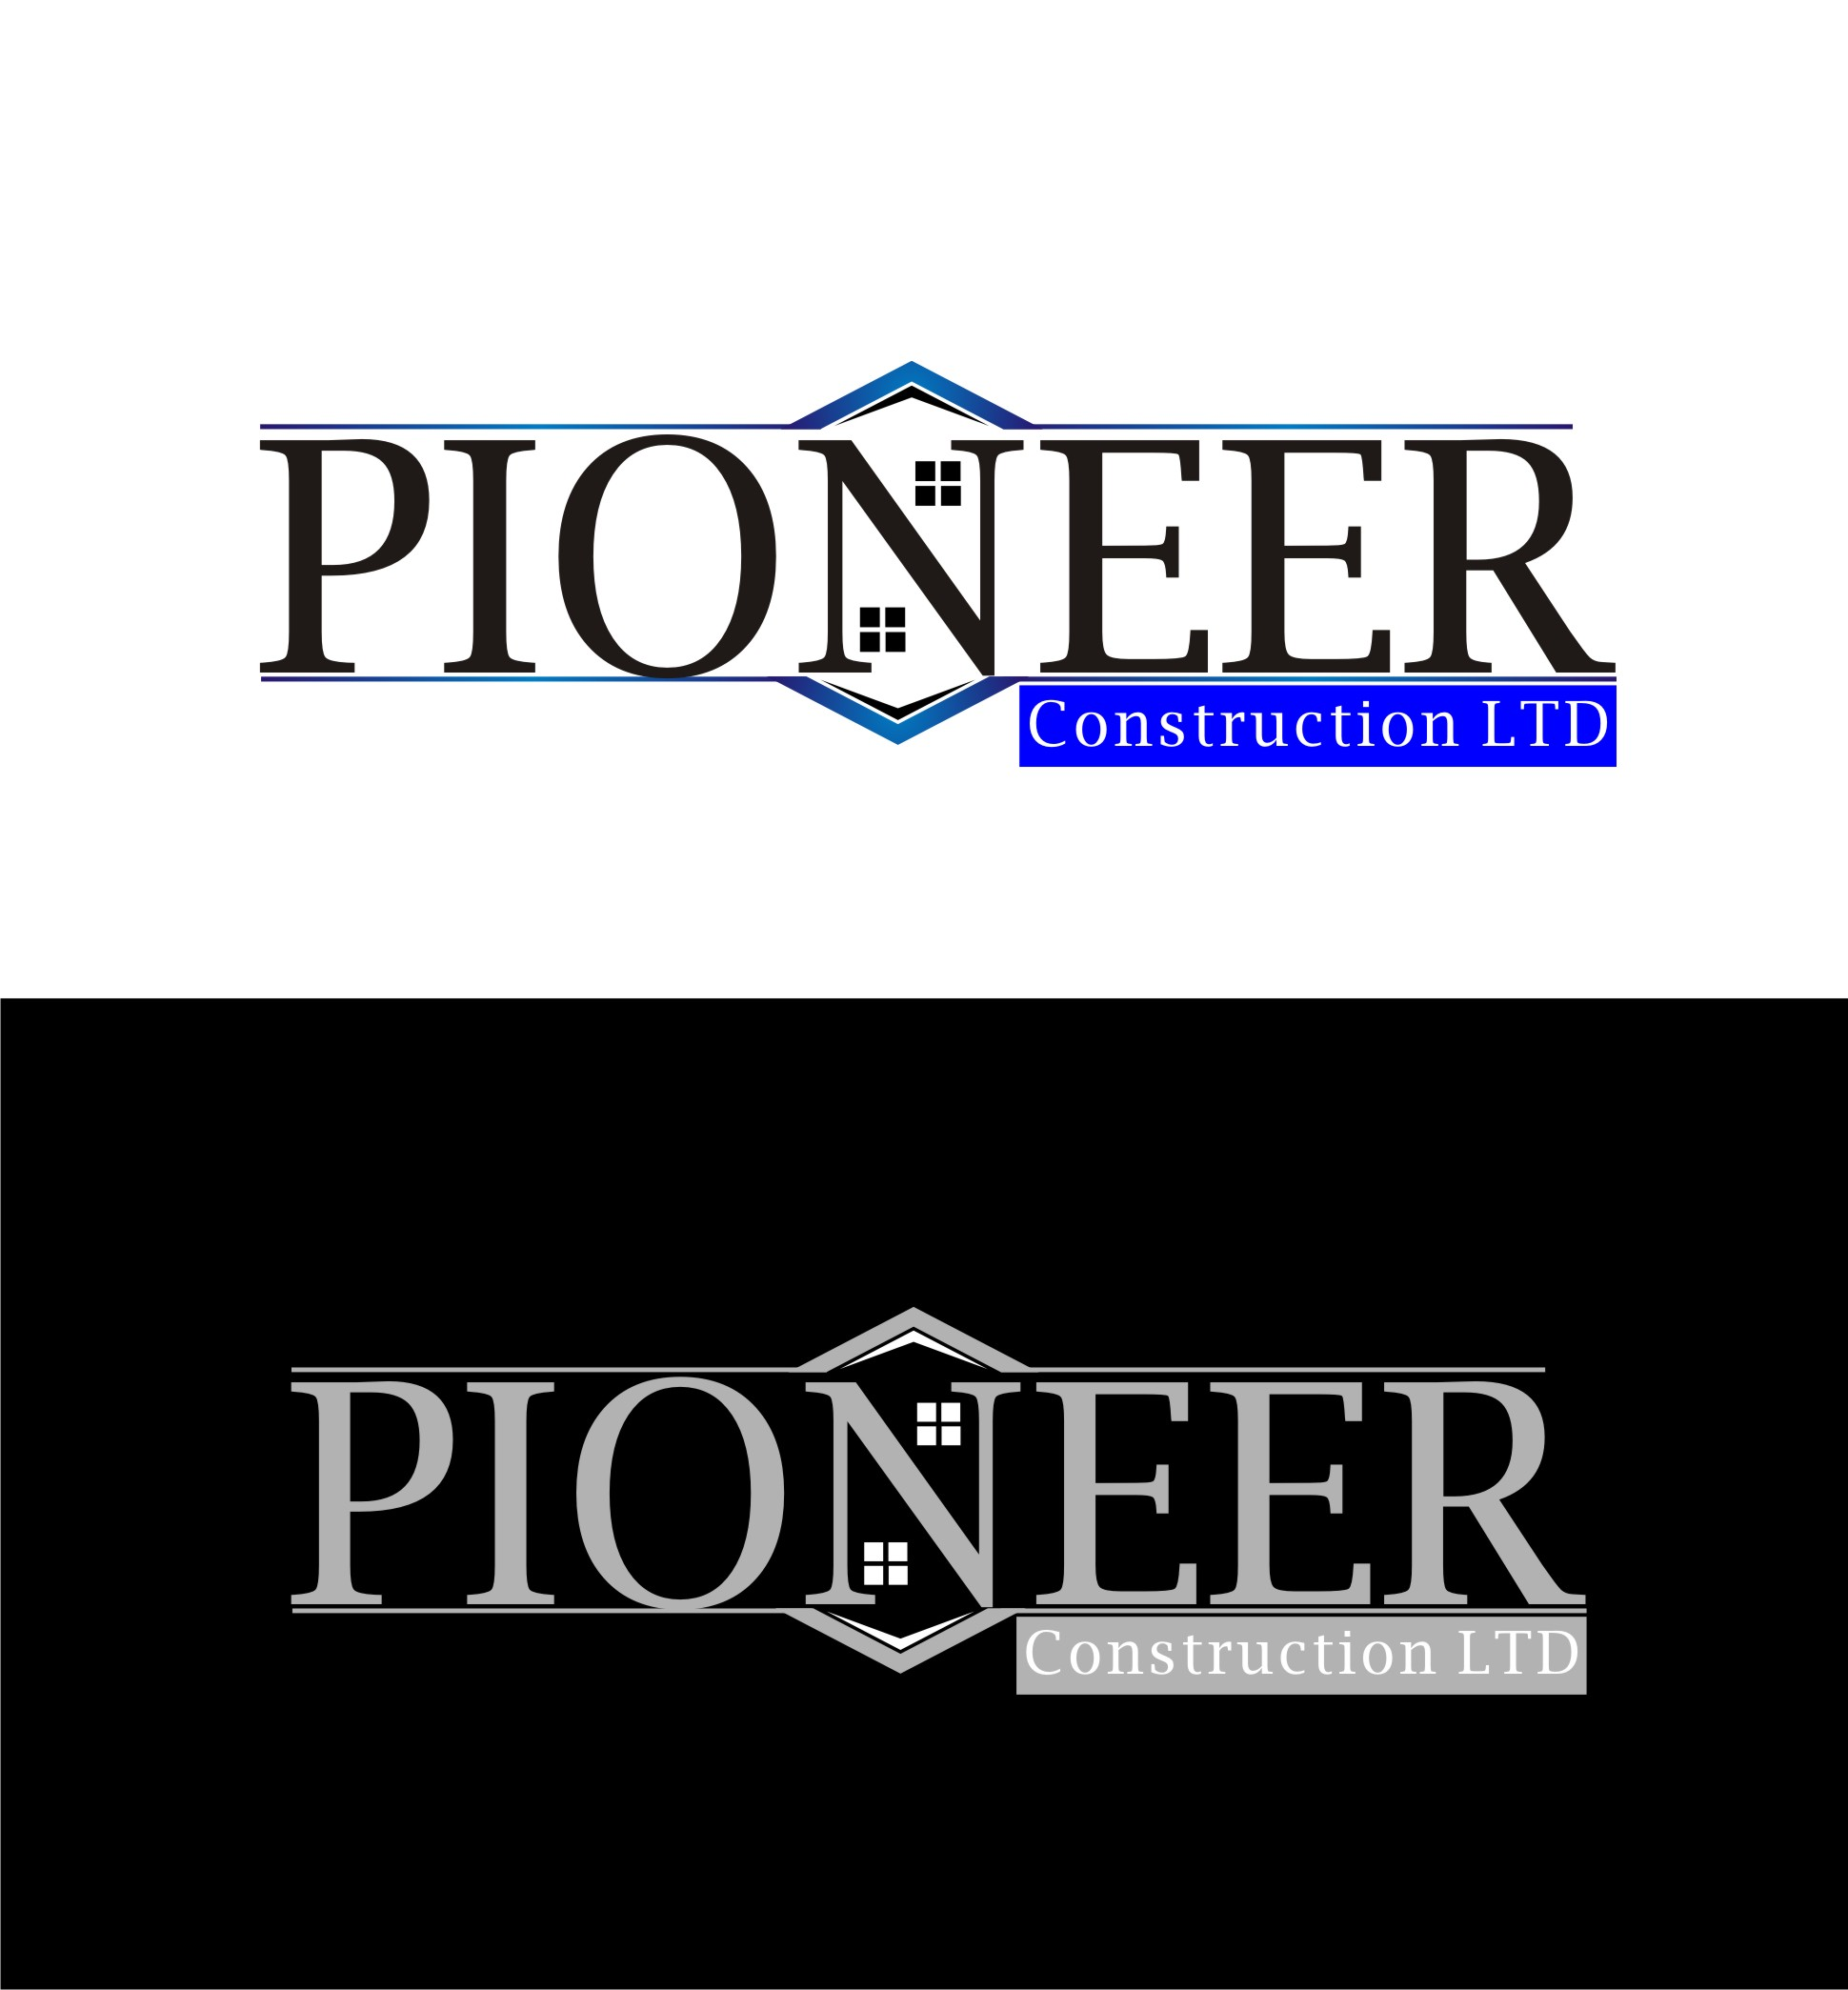 Logo Design by Yuda Hermawan - Entry No. 12 in the Logo Design Contest Imaginative Logo Design for  Pioneer Construction Ltd.